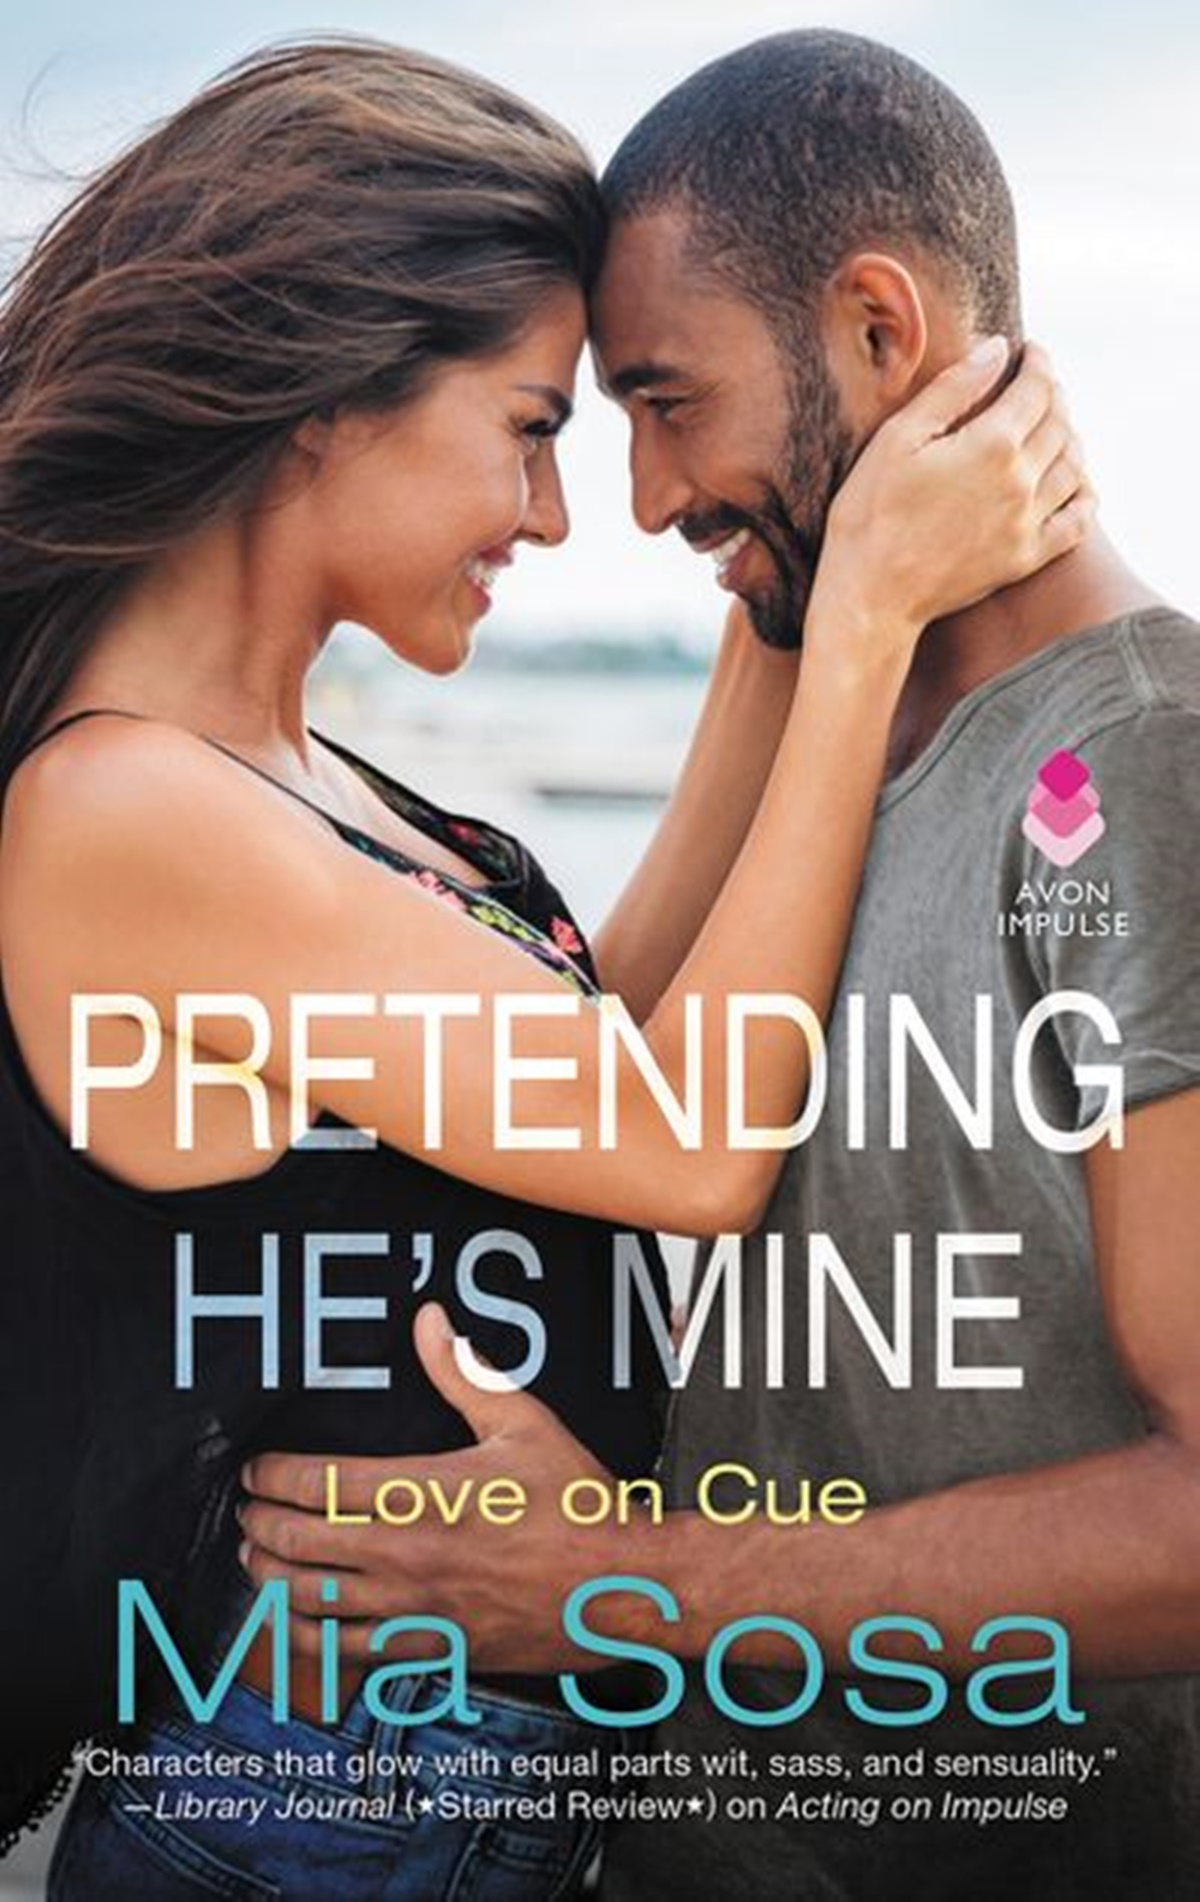 Fake Relationship Romance Novels, cover of Pretending He's Mineb by Mia Sosa, books